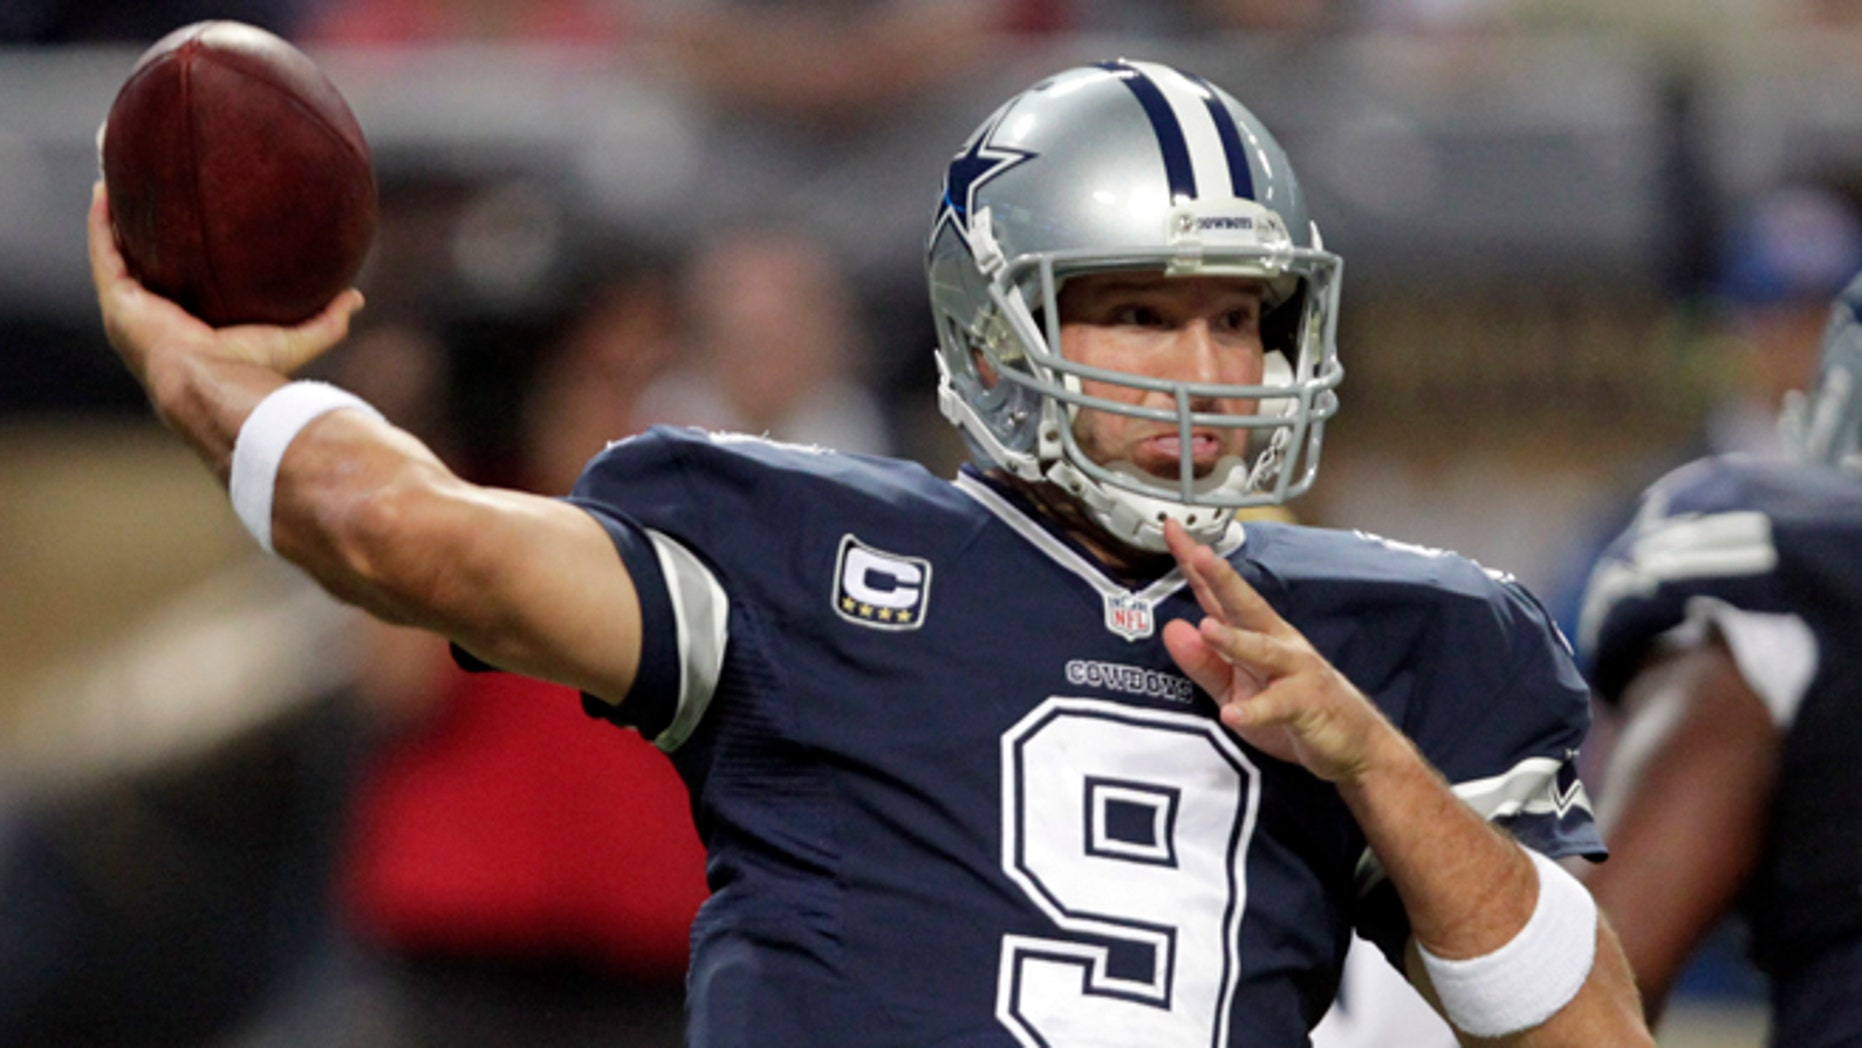 Dallas Cowboys quarterback Tony Romo throws during the second quarter of an NFL football game against the St. Louis Rams, Sunday, Sept. 21, 2014, in St. Louis. (AP Photo/Tom Gannam)